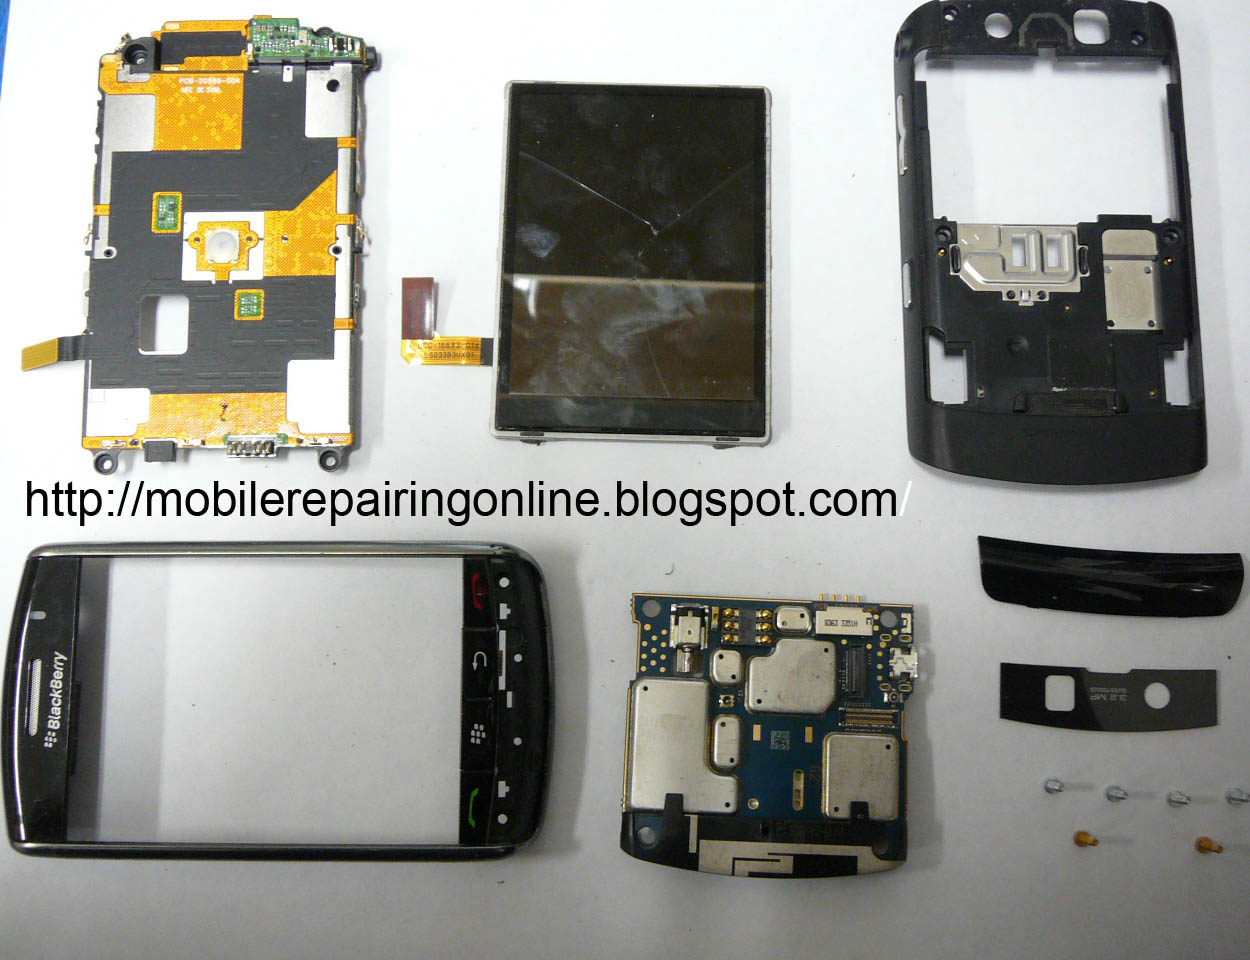 Blackberry Repair solution